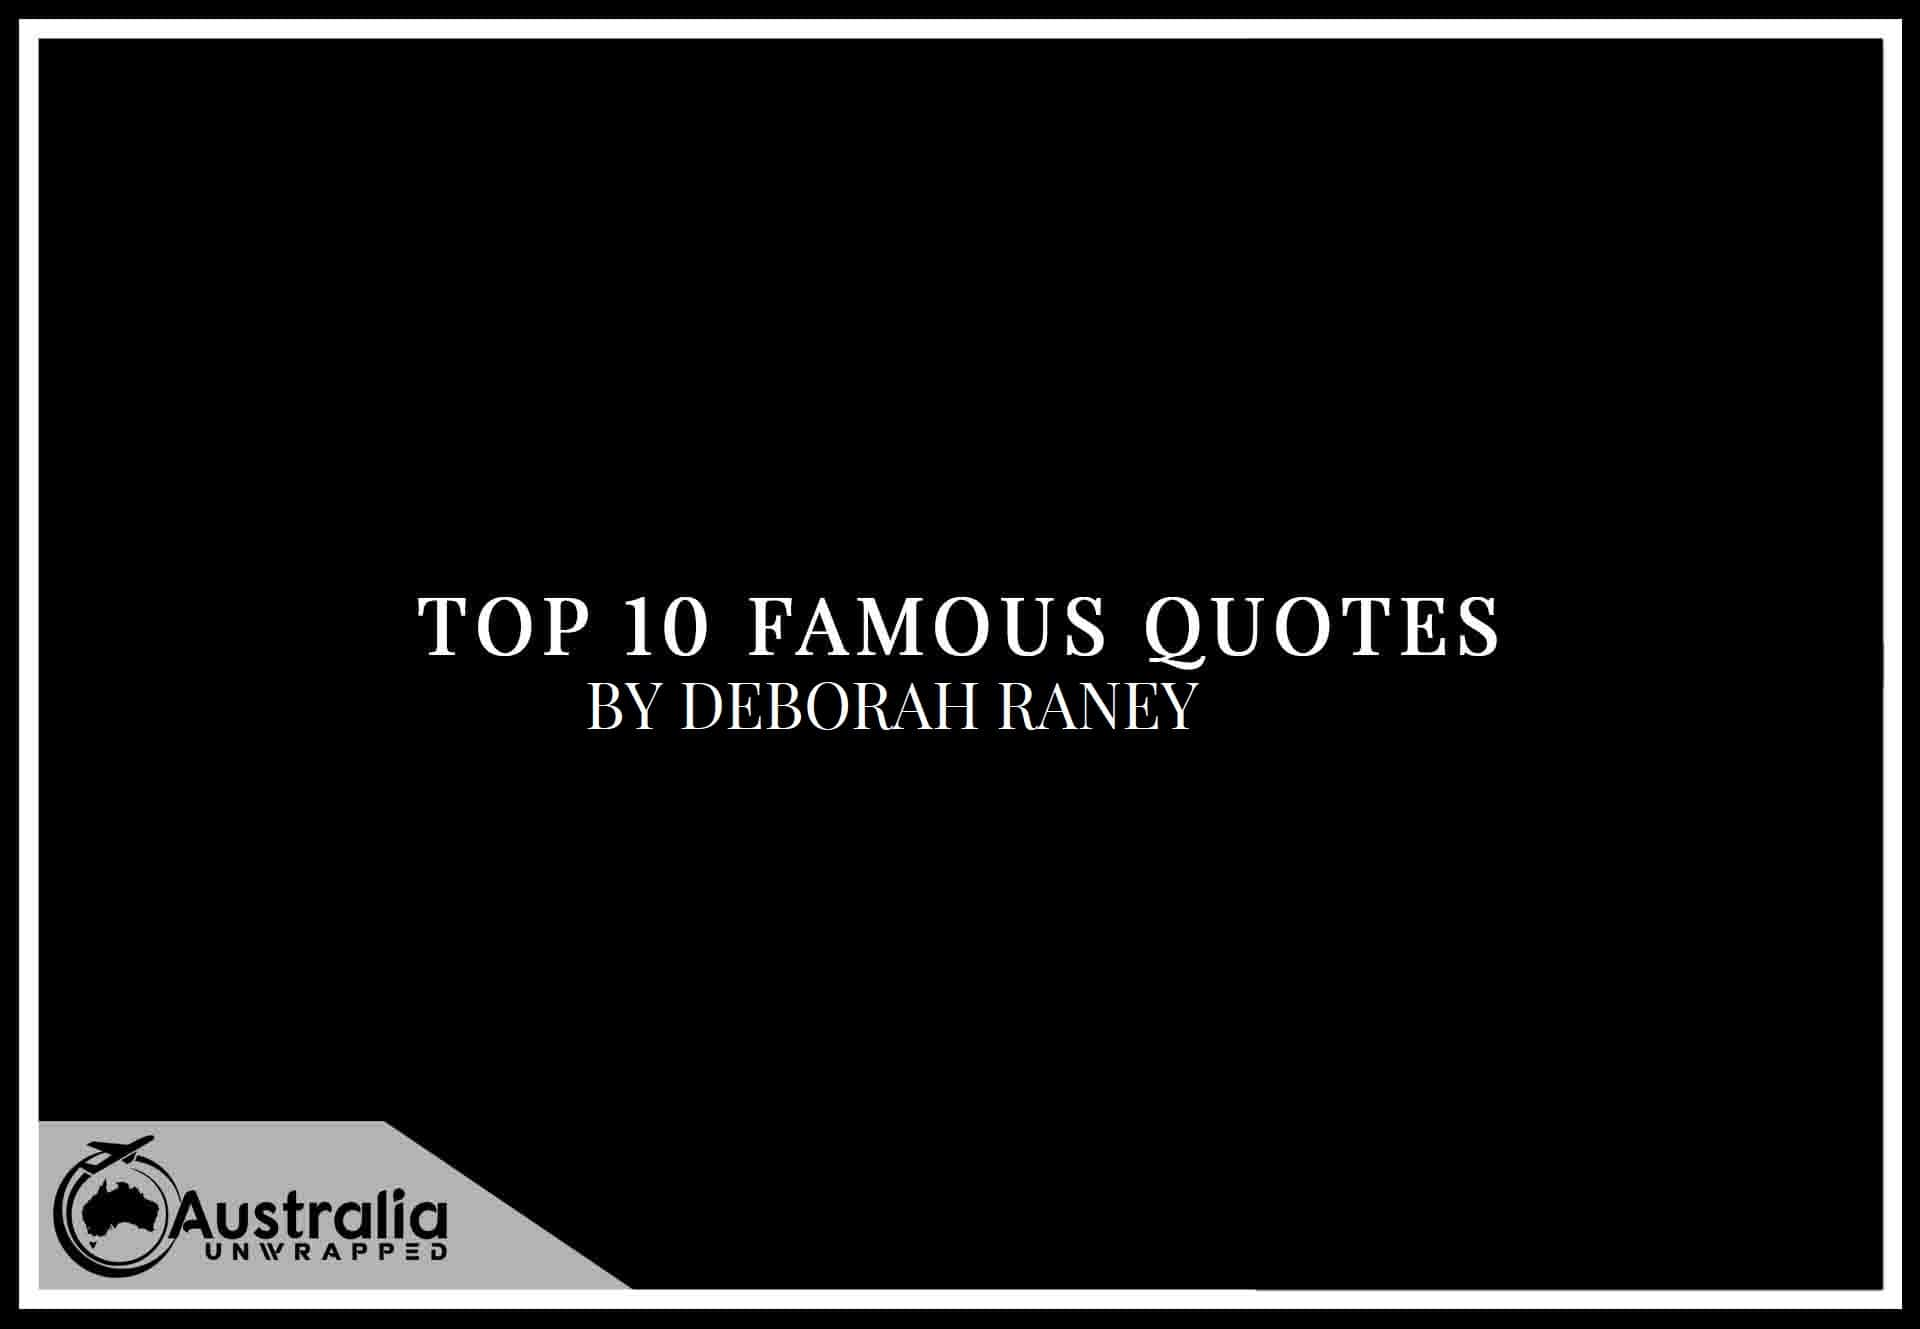 Top 10 Famous Quotes by Author Deborah Raney